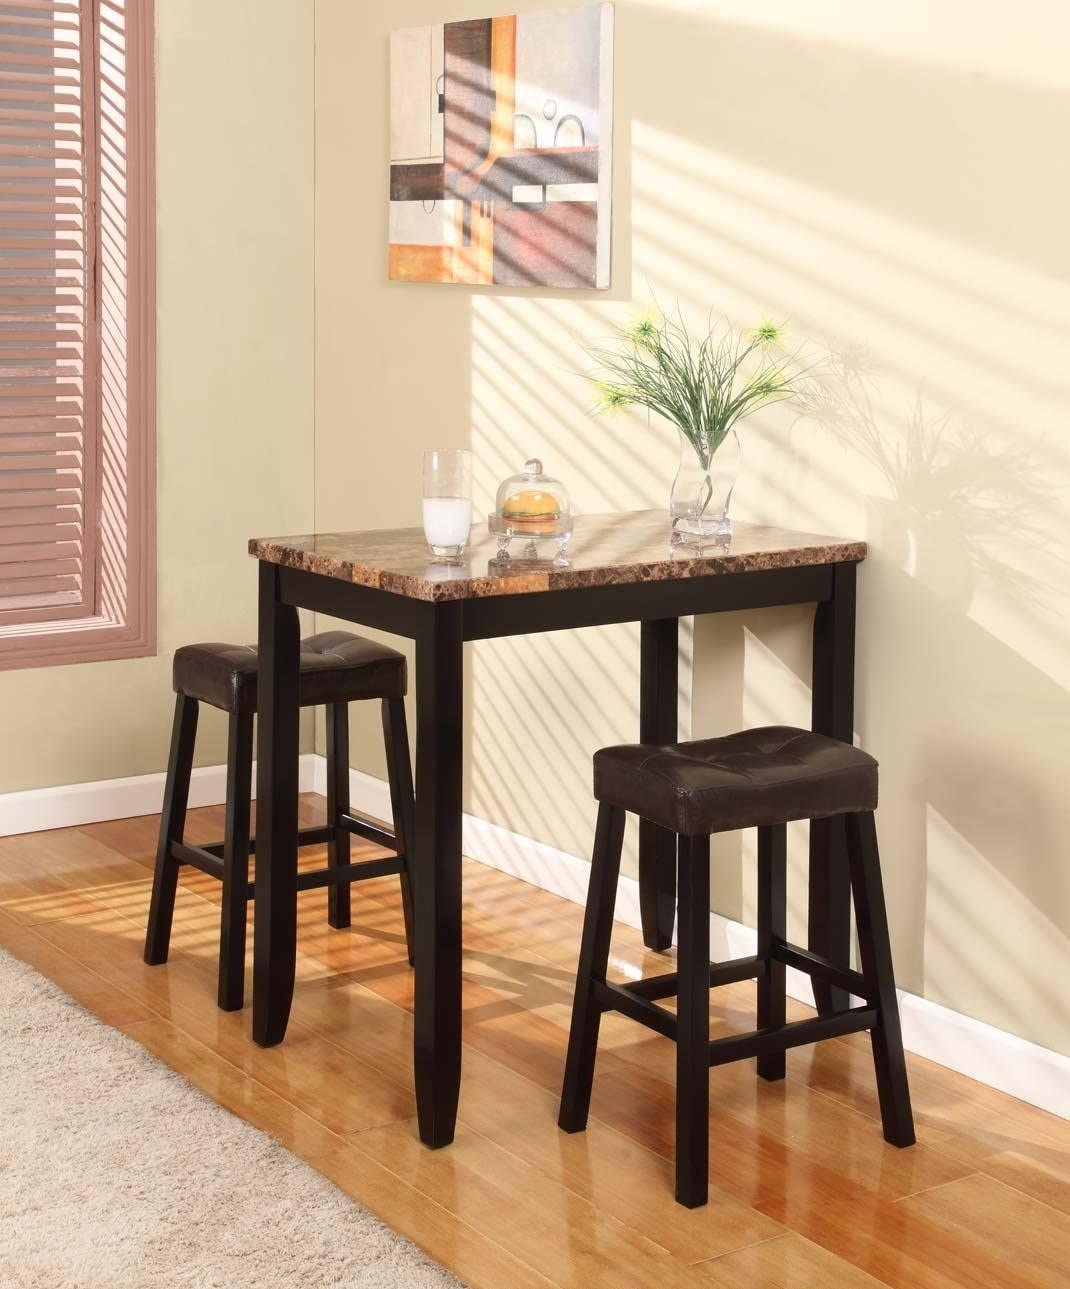 3 Piece Counter Height Pub Table Set & Pub Table And Chairs 3 Piece Set - Foter